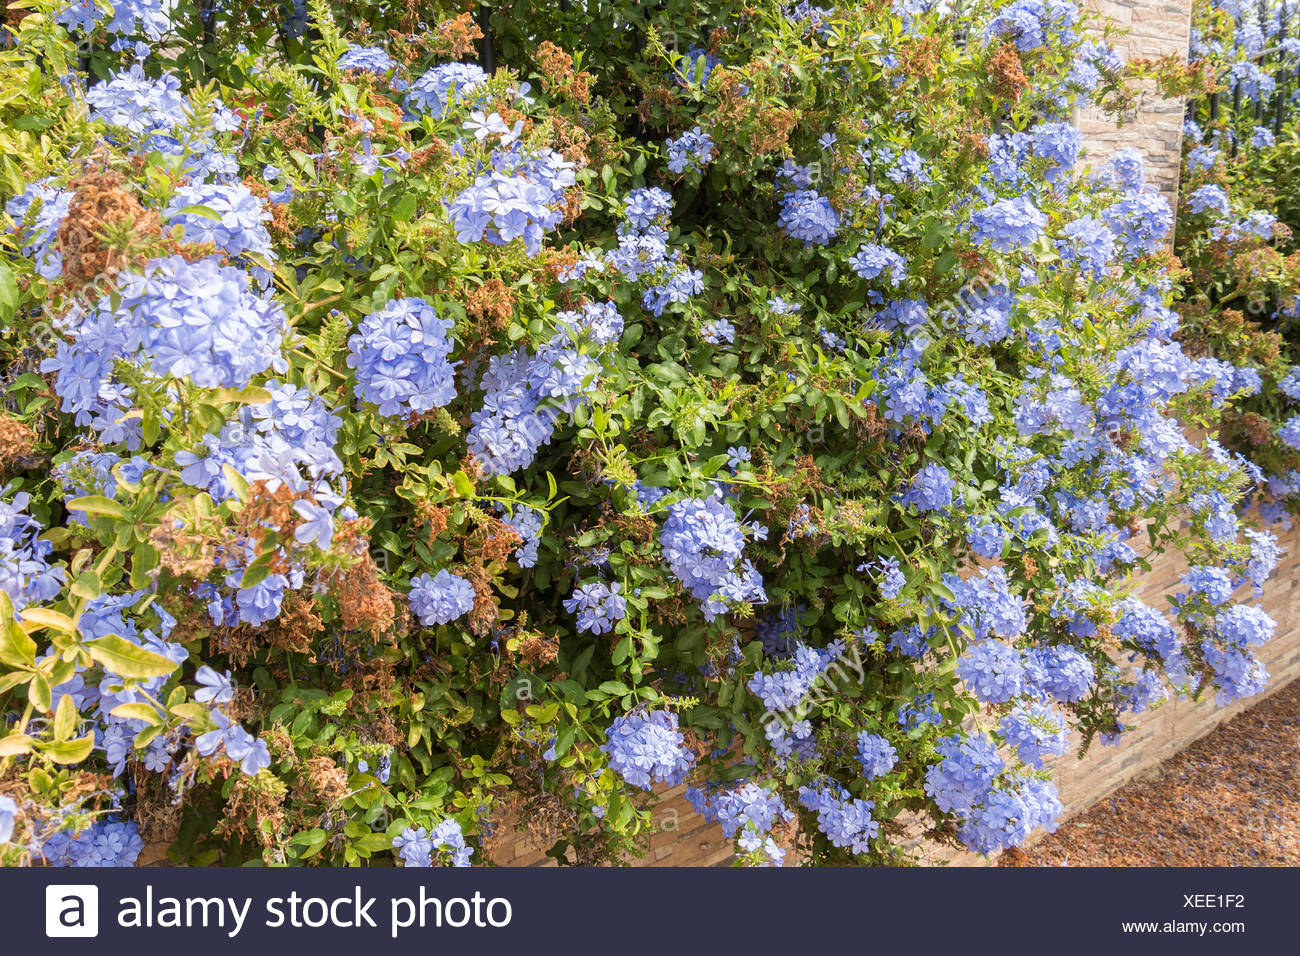 Blue Flowers Plumbago Auriculata Cape Leadwort Blue Jasmine Stock